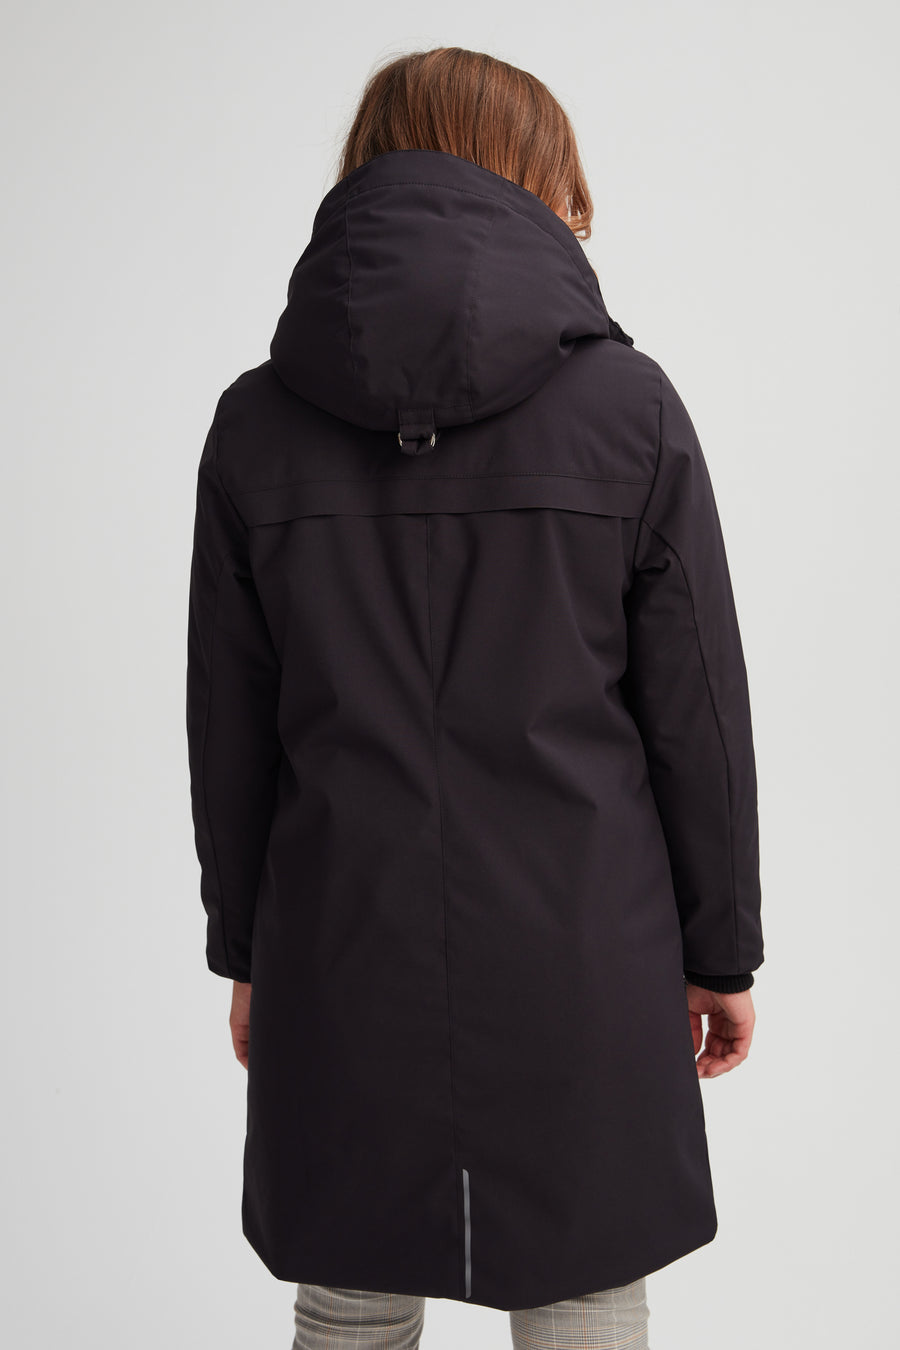 Manteau d'hiver BERGEN RECYCLÉ - AK10042 || RECYCLED BERGEN winter coat - AK10042